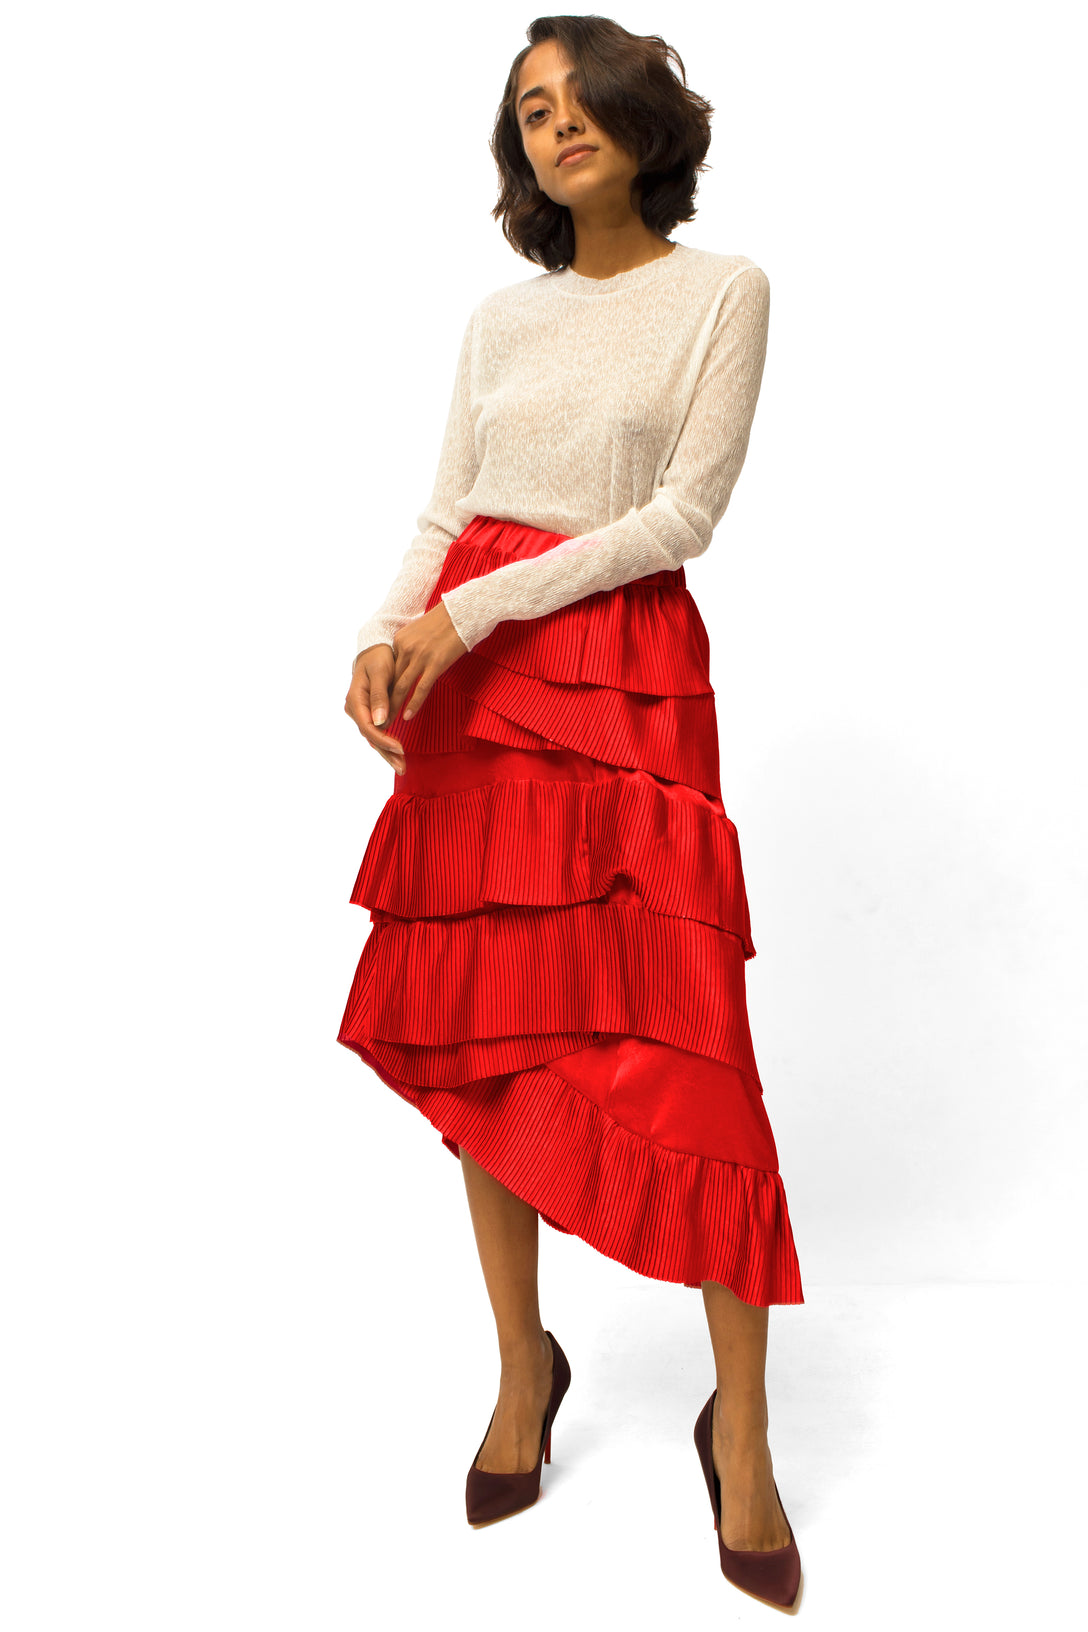 6978f134d89 LAYERED SKIRT - PLAY MORE HAUS